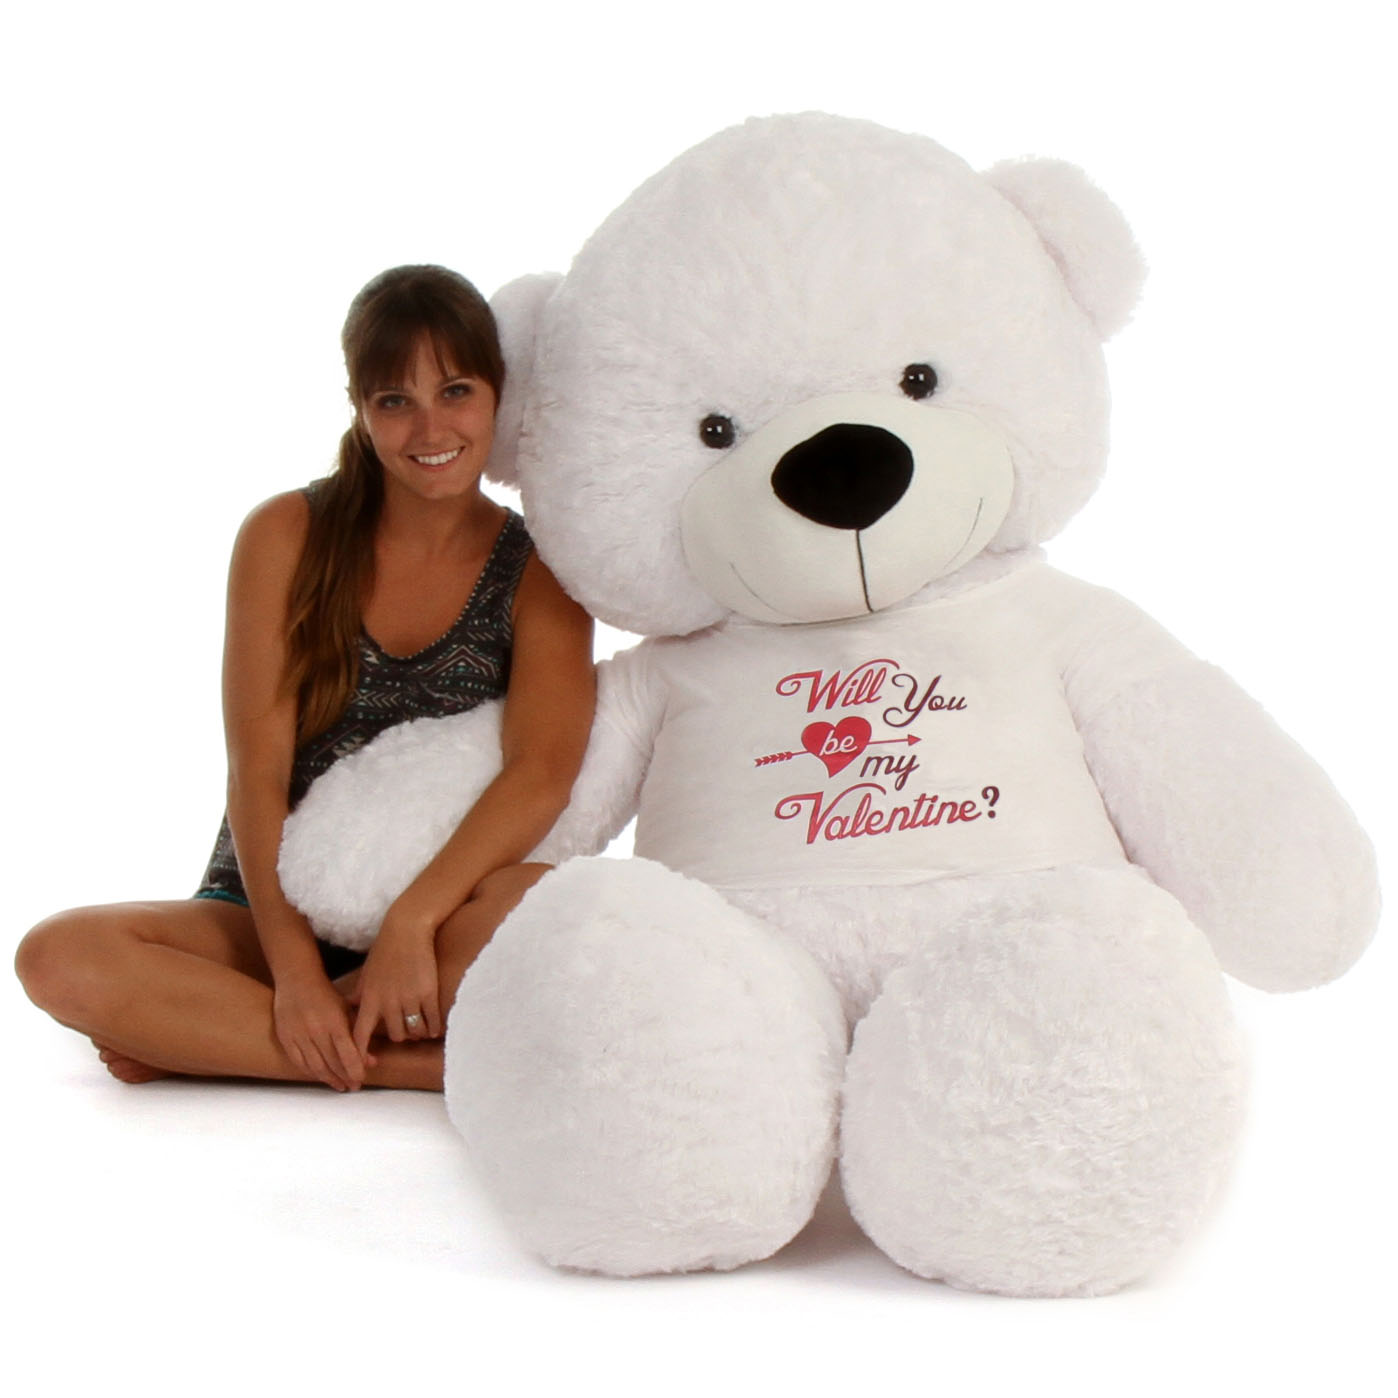 72in-coco-cuddles-giant-teddy-in-will-you-be-my-valentine-shirt.jpg